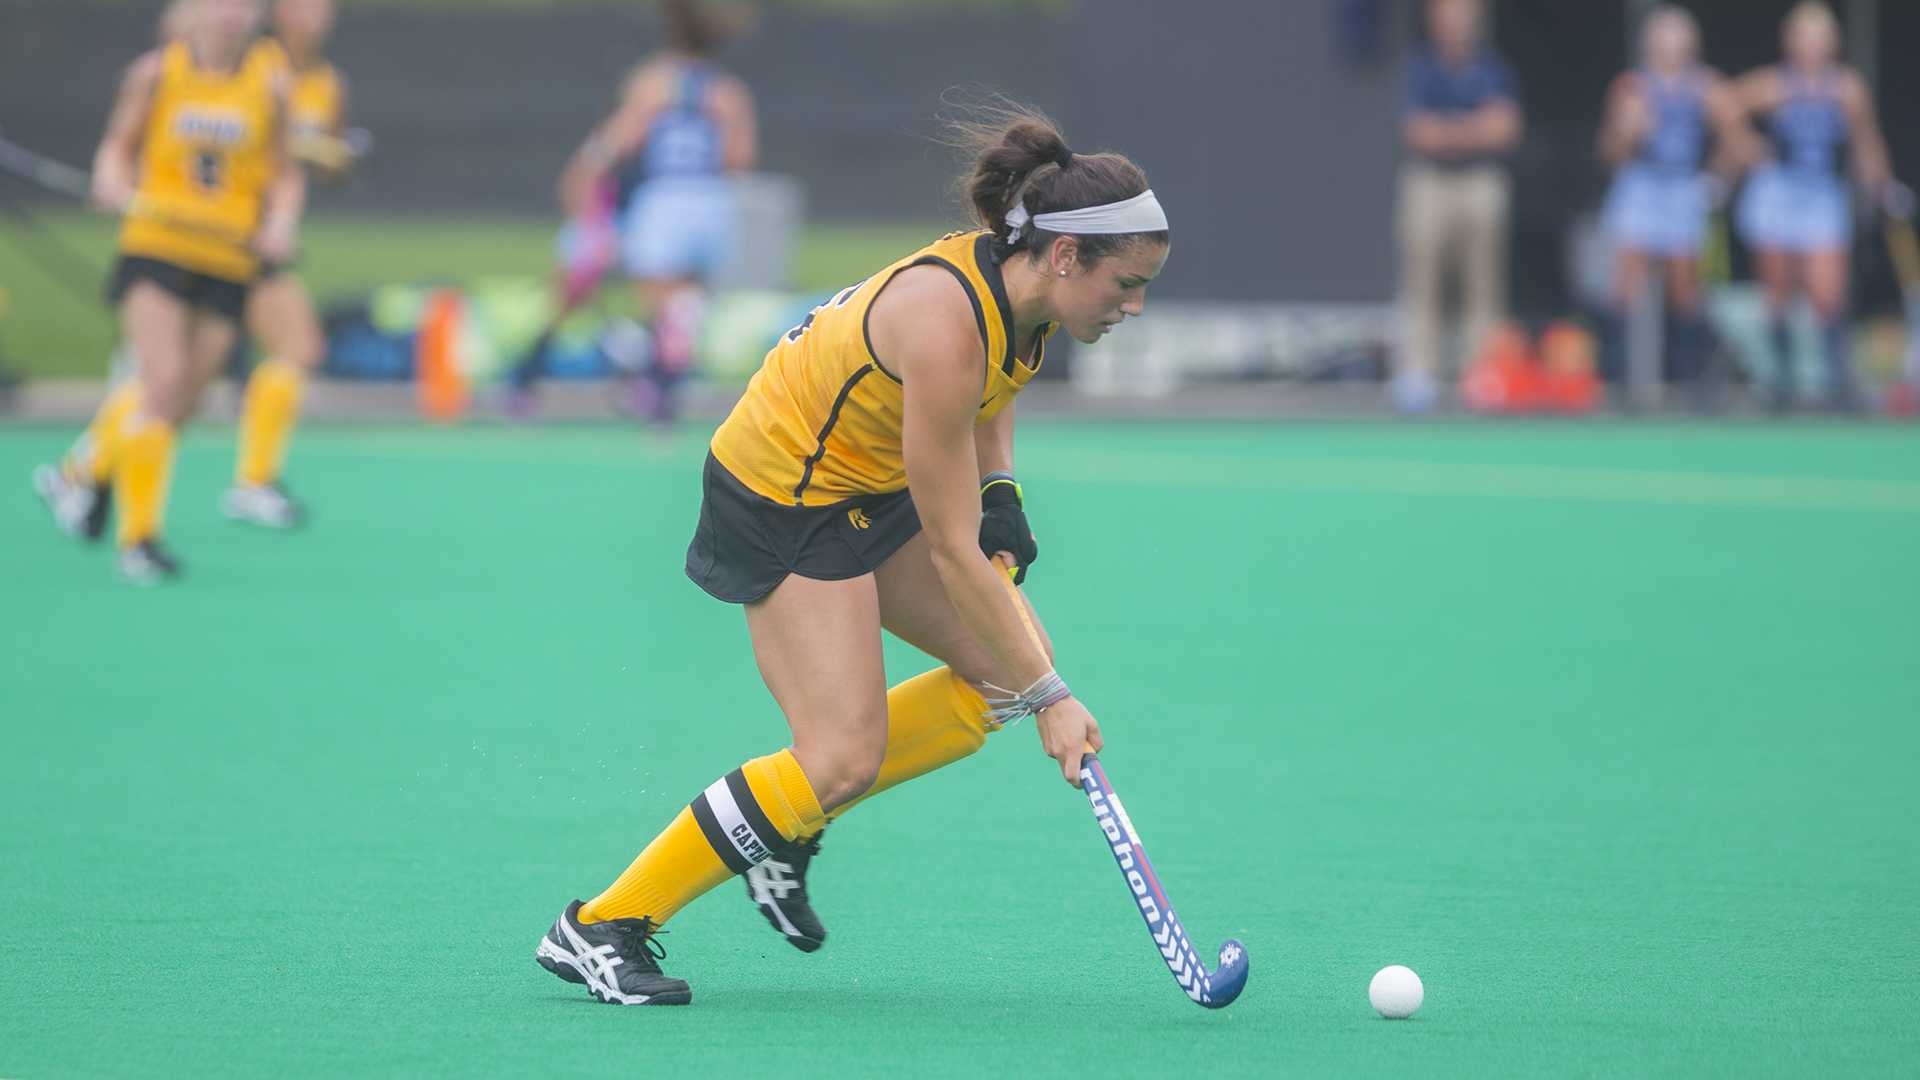 Iowa's Mallory Lefkowitz hit the ball during a field hockey game during the Big Ten/ACC Challenge at Grant Field in Iowa City on Sunday, Aug. 27, 2017. The Hawkeyes fell to the Tarheels, 3-0. (Lily Smith/The Daily Iowan)